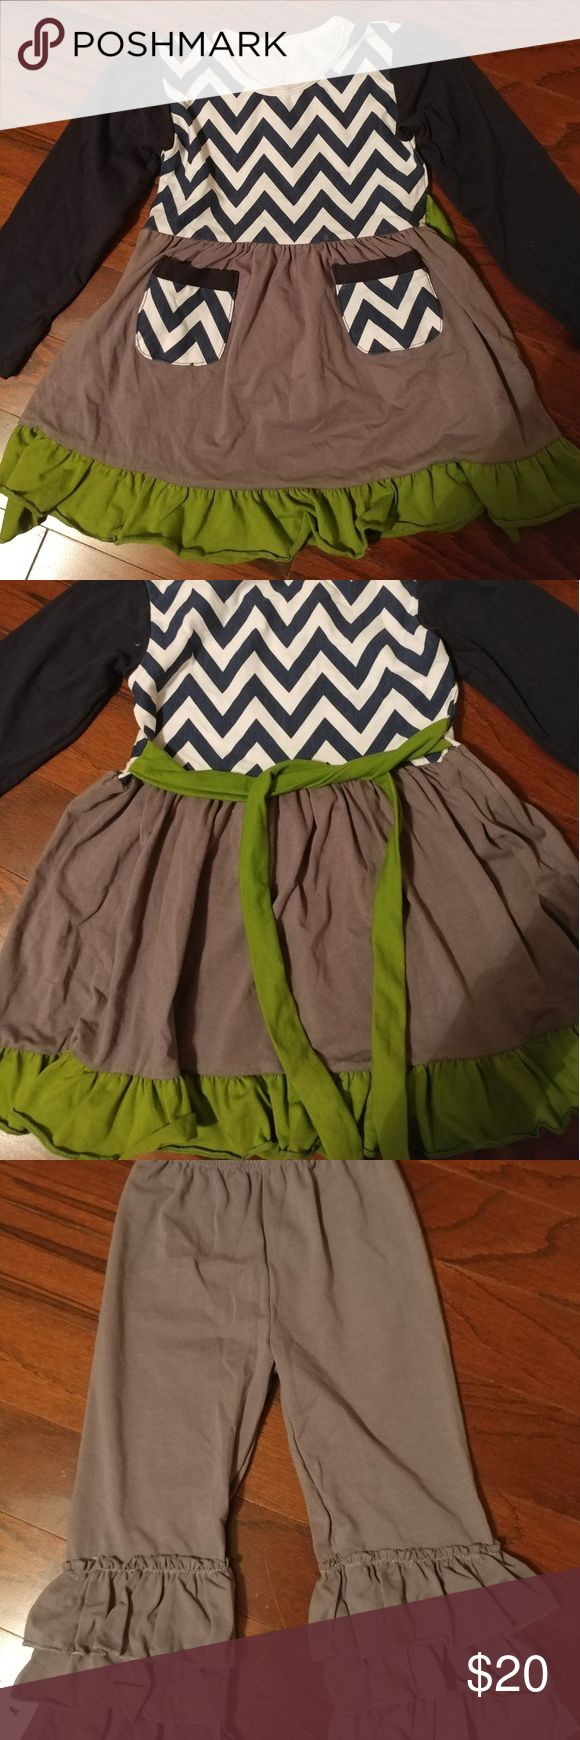 Brand new Boutique outfit Very cute outfit. Chevron print with Chevron pockets and green bottom Ruffle. Has a green tie that ties in the back. Gray 3 tiered Ruffled pants. Size Small but fits Size 2-3. Matching Sets